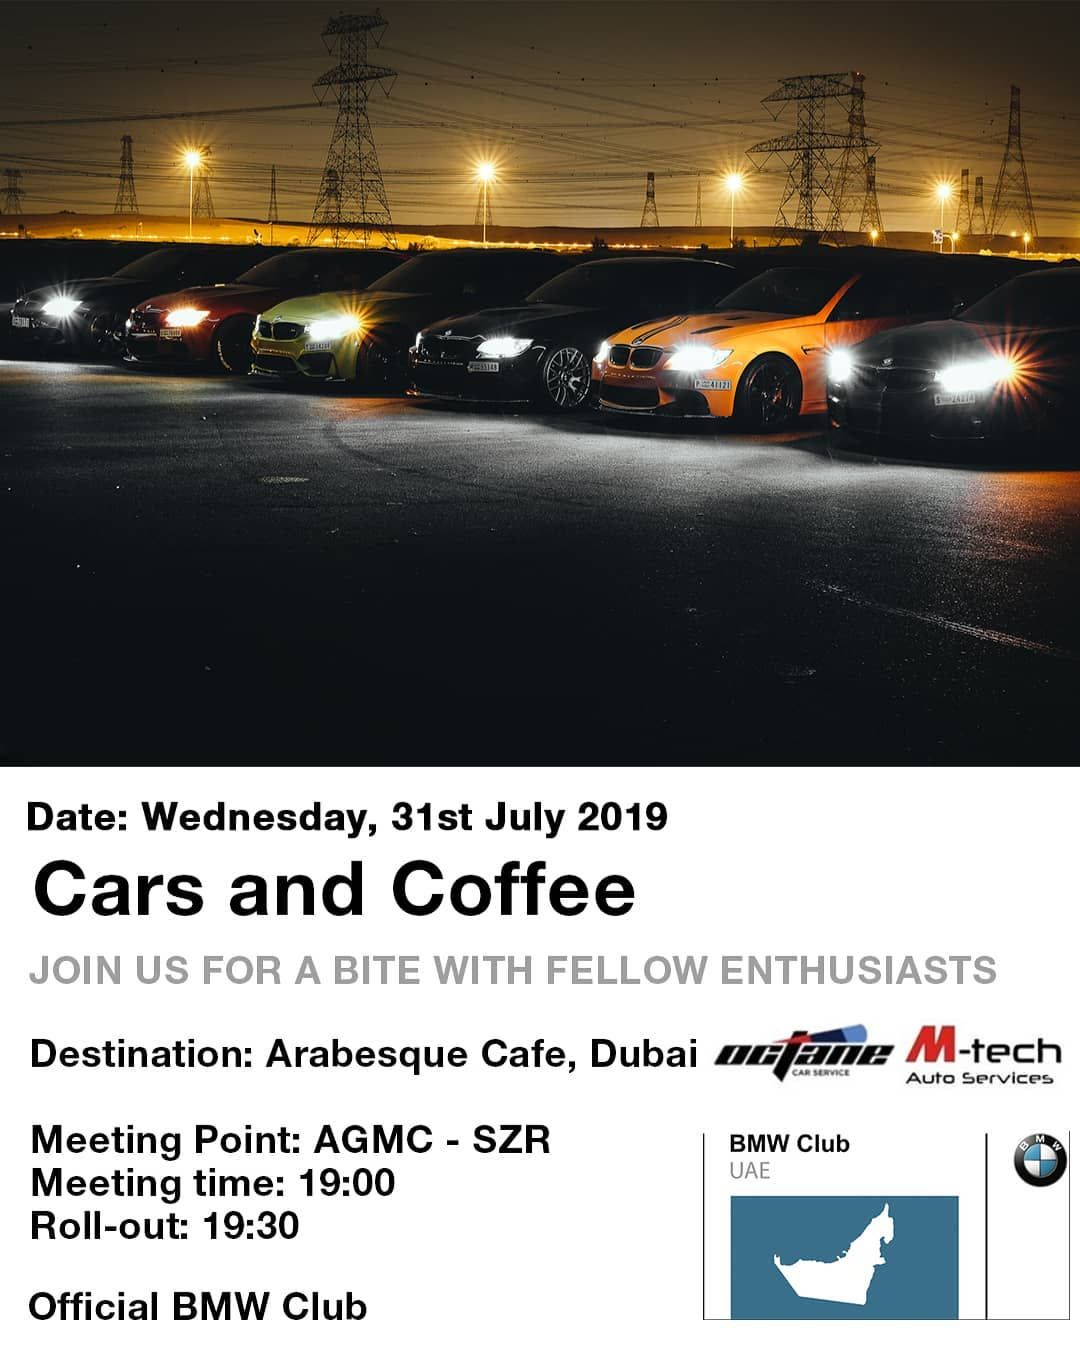 Come Meet Us On The 31st Of July For A Meet With Fellow